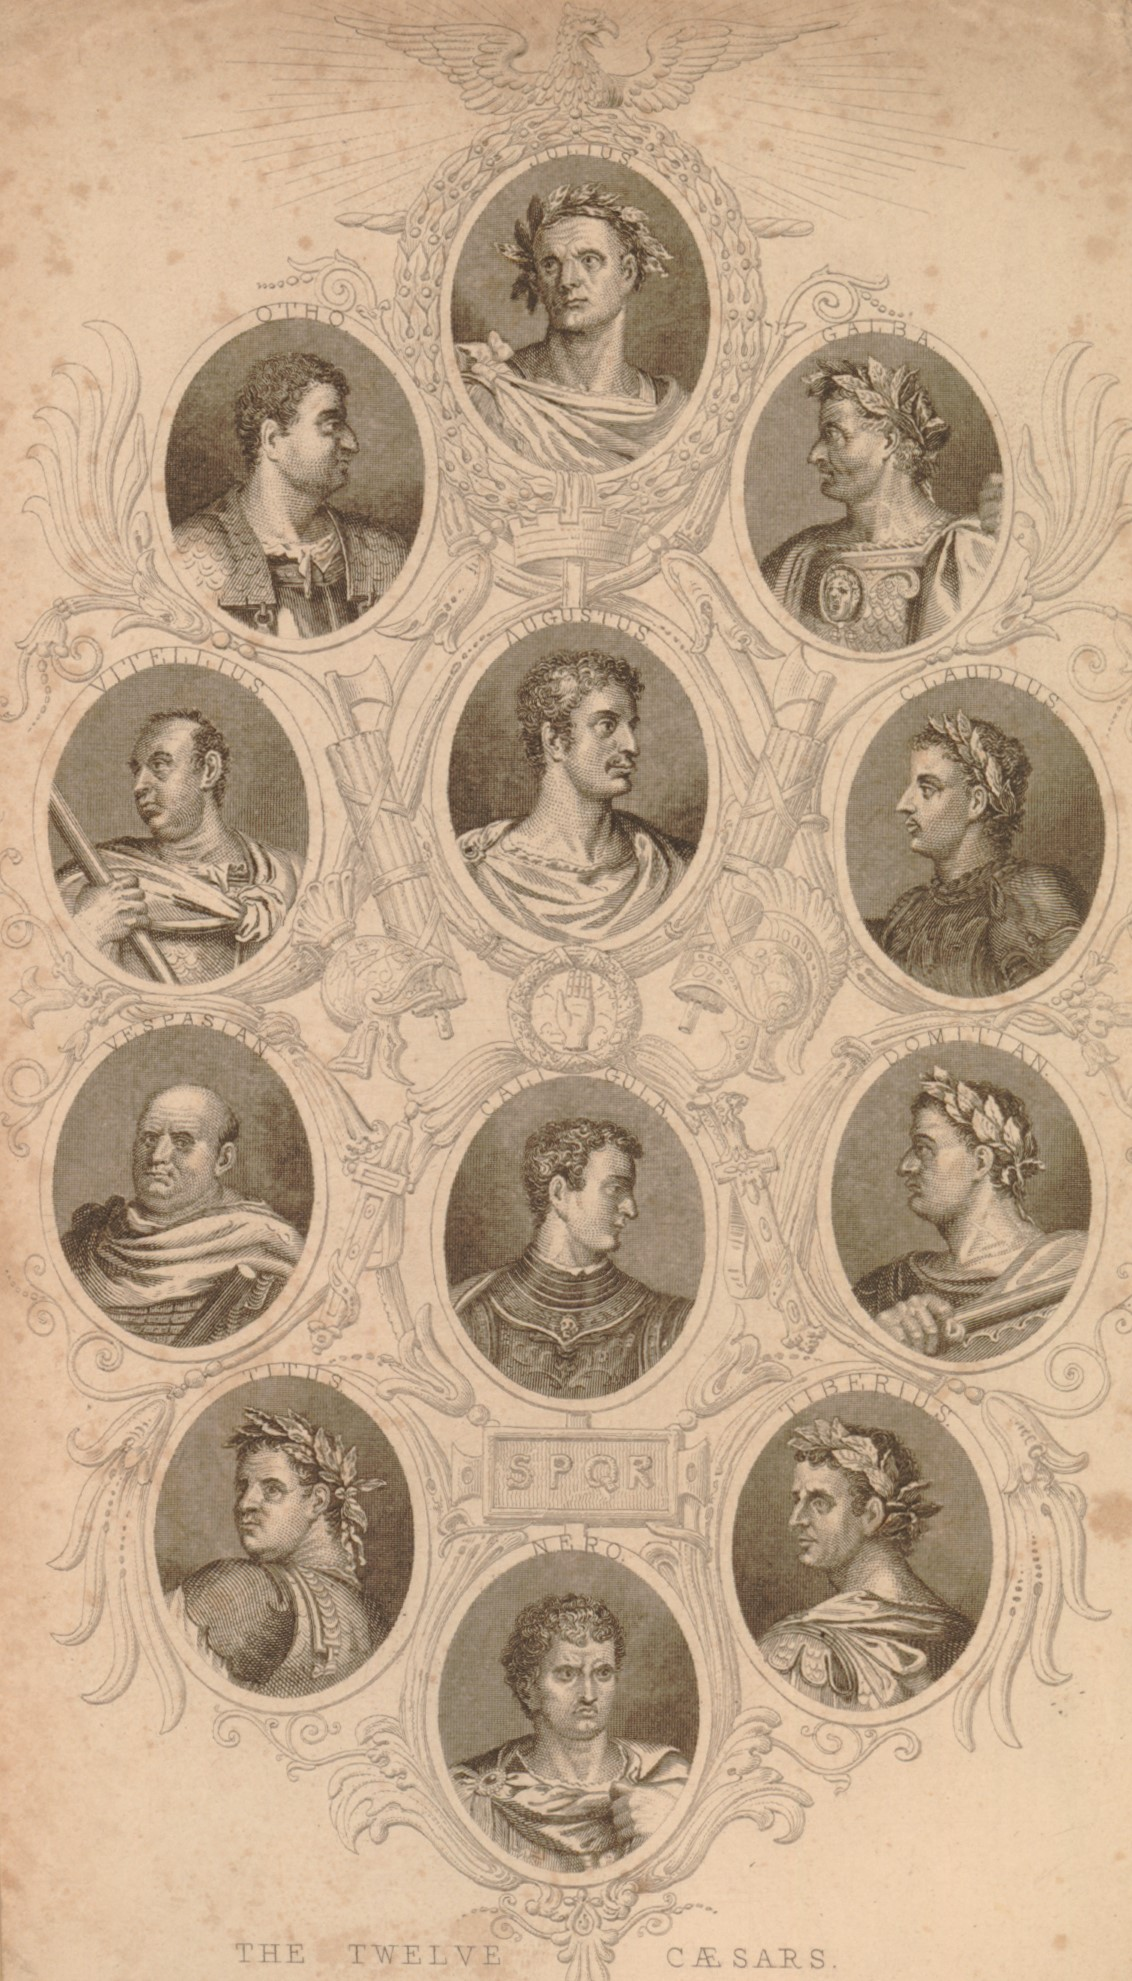 Portrait of the twelve Caesars, in an elaborate frame, each sitter bust-length in an oval with his name above, Augustus and Calligula at the centre with Julius Caesar on top and Nero on the bottom, Galba, Claudius, Domitian and Tiberius on the right, and Otho, Vitellius, Vespasian and Titus on the left.